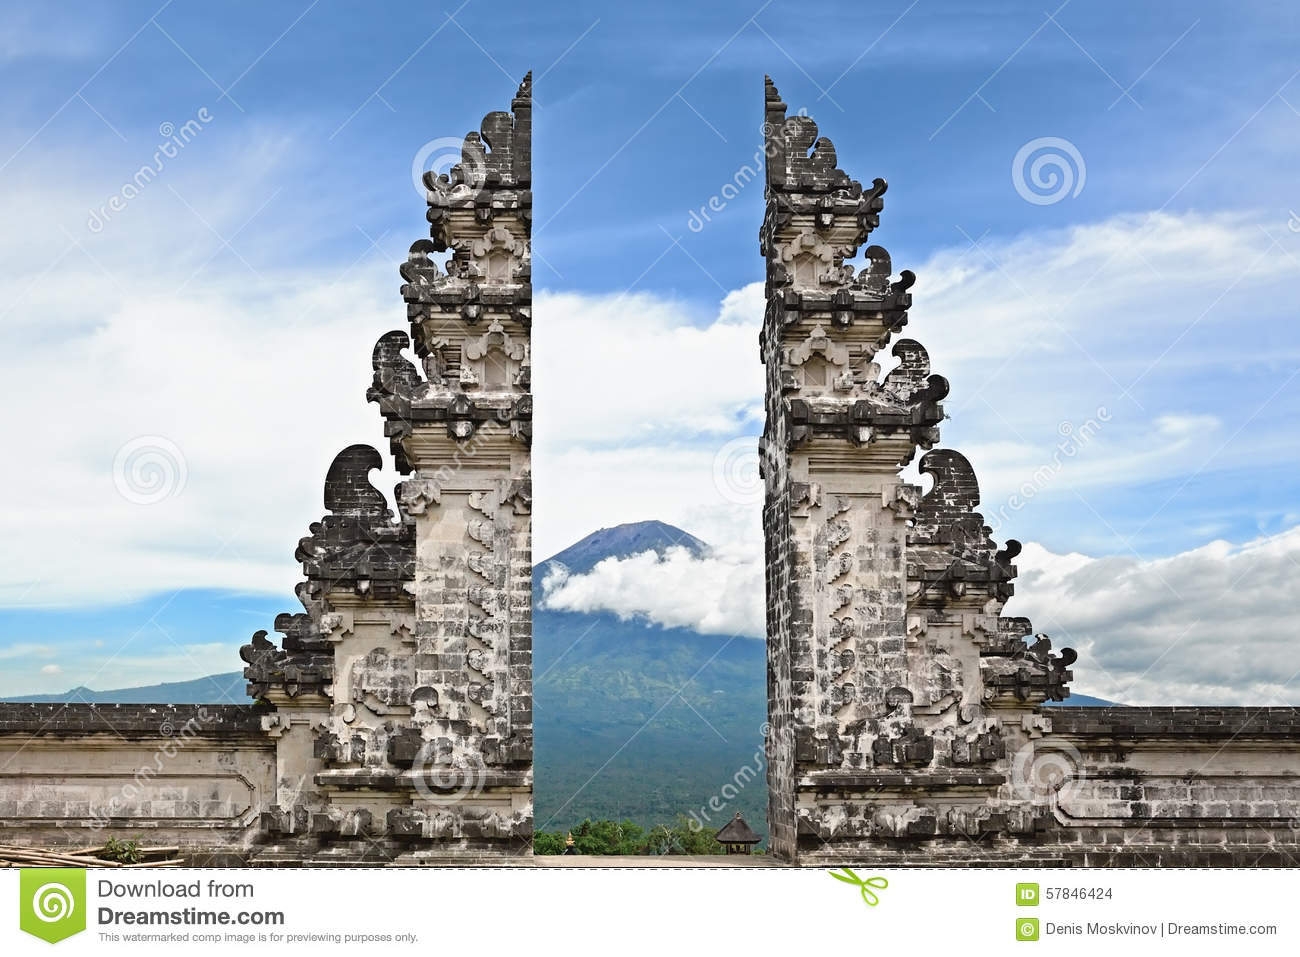 Symbol bali hindu temple on agung mount background stock photo symbol bali hindu temple on agung mount background biocorpaavc Gallery